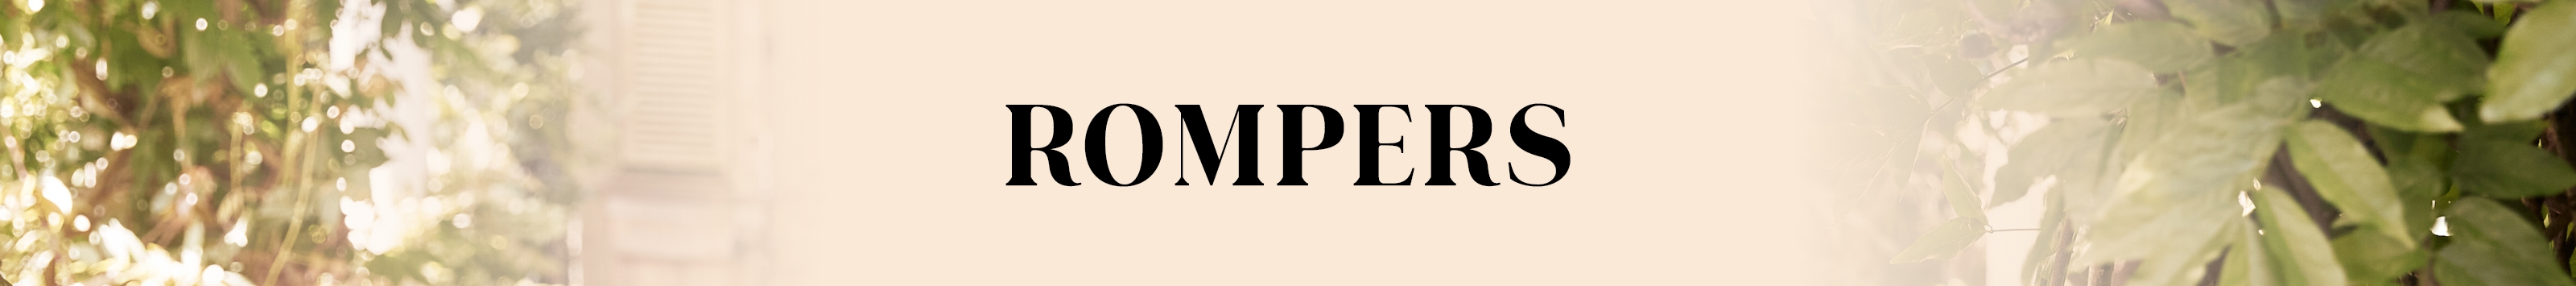 banner-category-lounge-rompers-1.jpg